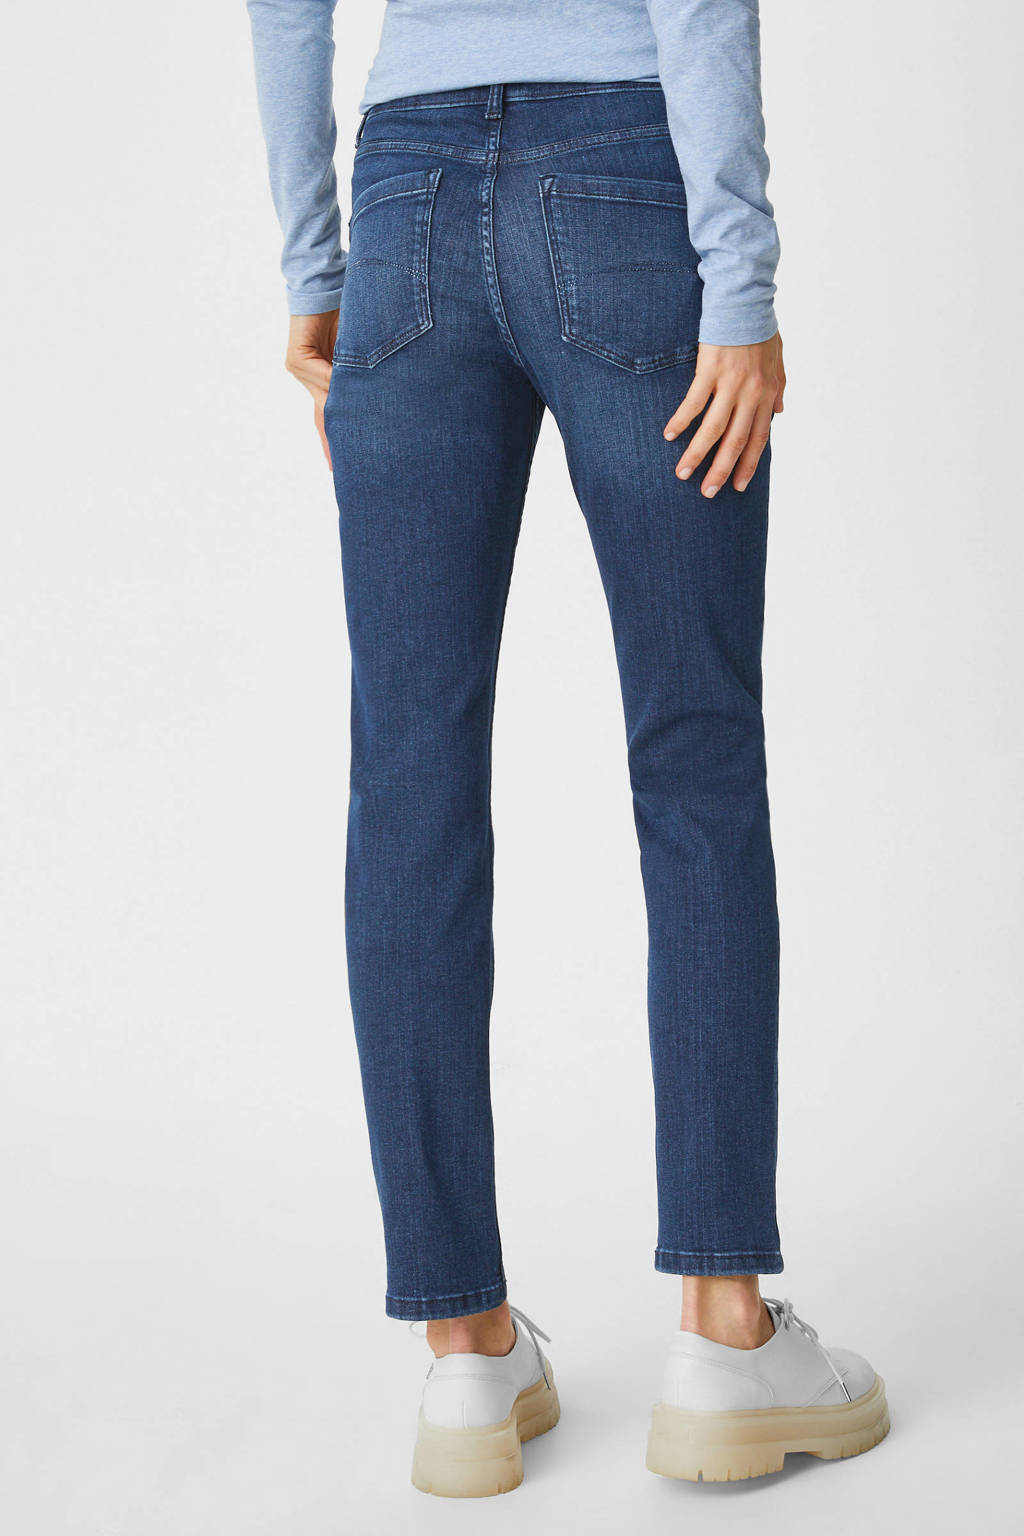 C&A The Denim slim fit jeans donkerblauw, Donkerblauw